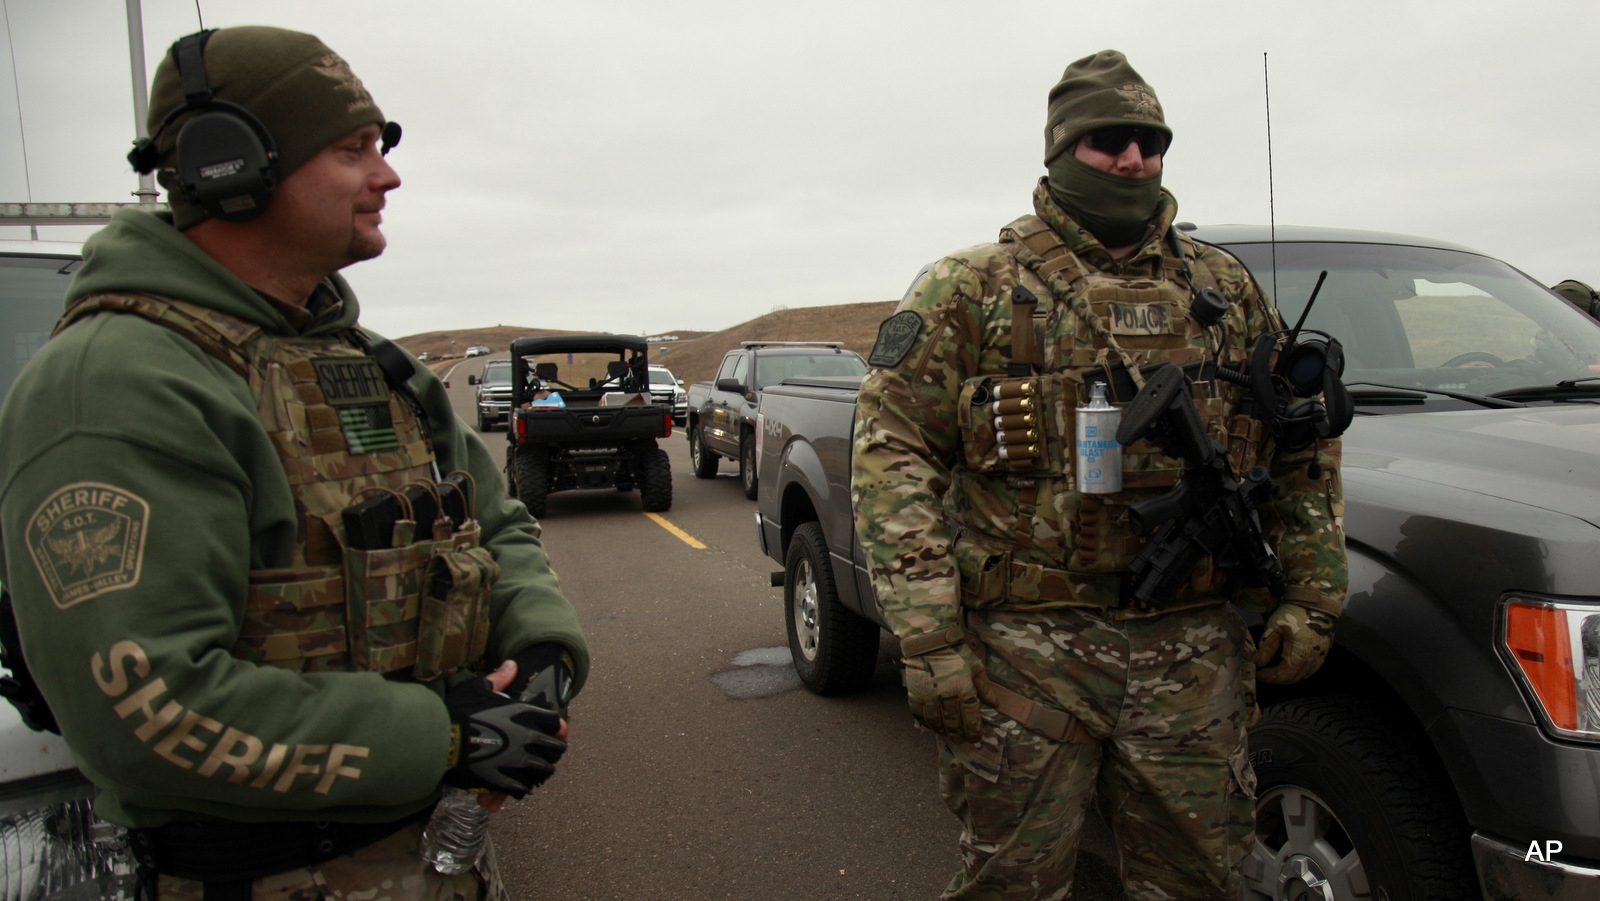 Two members of the Stutsman County SWAT team talk while deployed to watch protesters demonstrating against the Dakota Access Pipeline encroaching the water source near the Stand Rock Sioux Reservation, as they stand next to a police barricade on Highway 1806 in Cannon Ball, N.D., Sunday, Oct. 30, 2016.